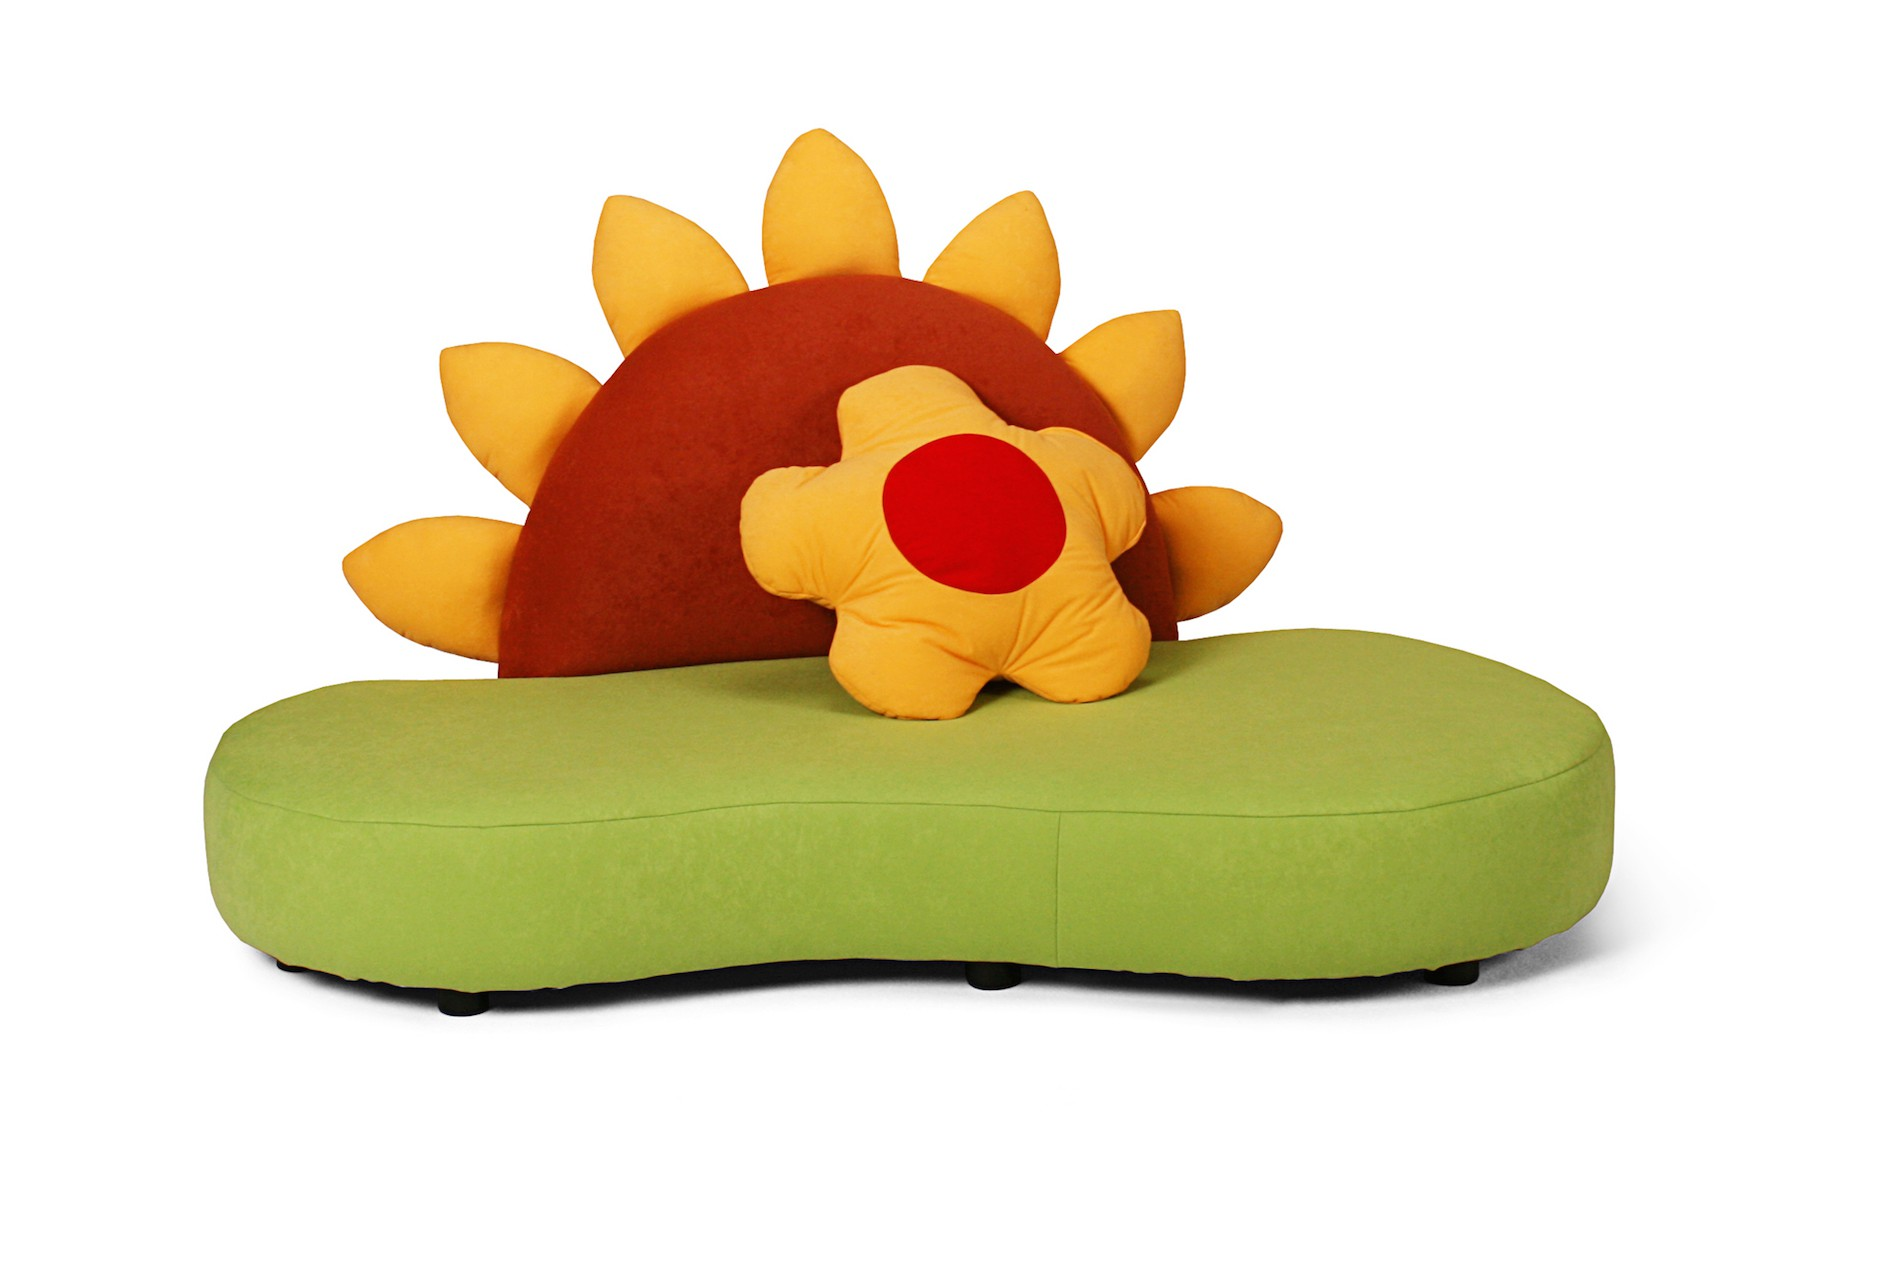 kindersofa mit sonnenblume kinic kindersofas. Black Bedroom Furniture Sets. Home Design Ideas